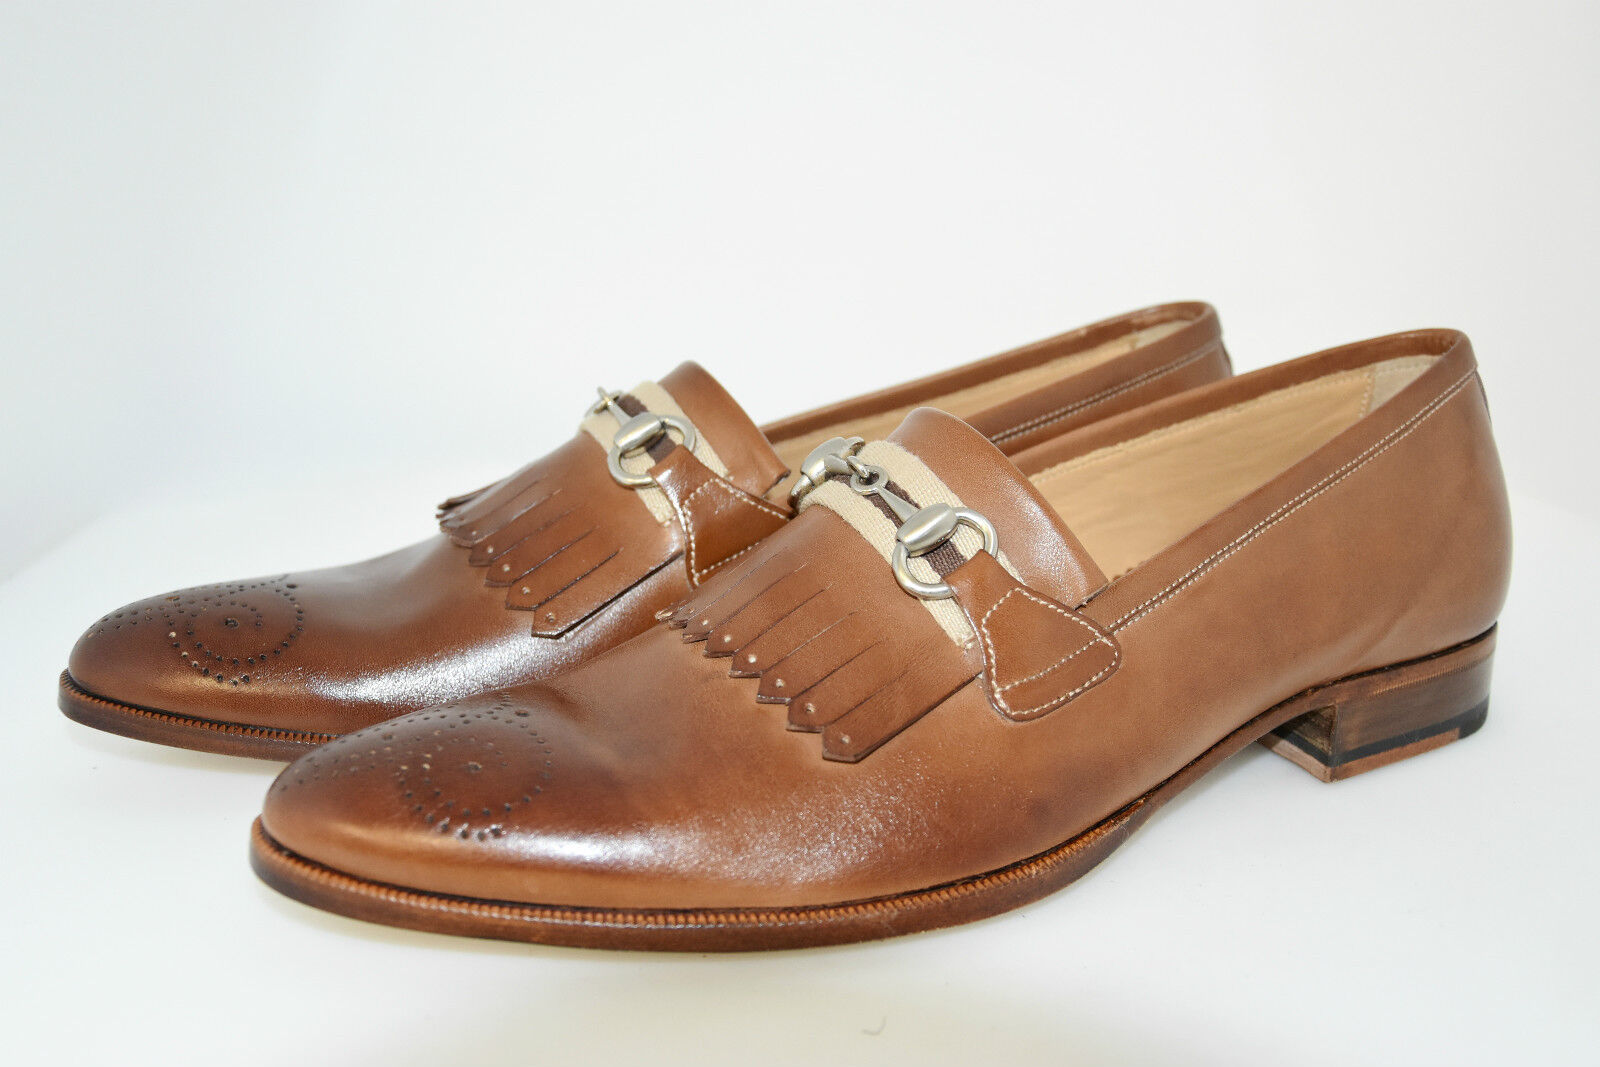 MAN-8eu-9usa-HORSEBIT LOAFER-MOCASSINO-CALF Marroneee-LEATHER SOLE-SUOLA CUOIO